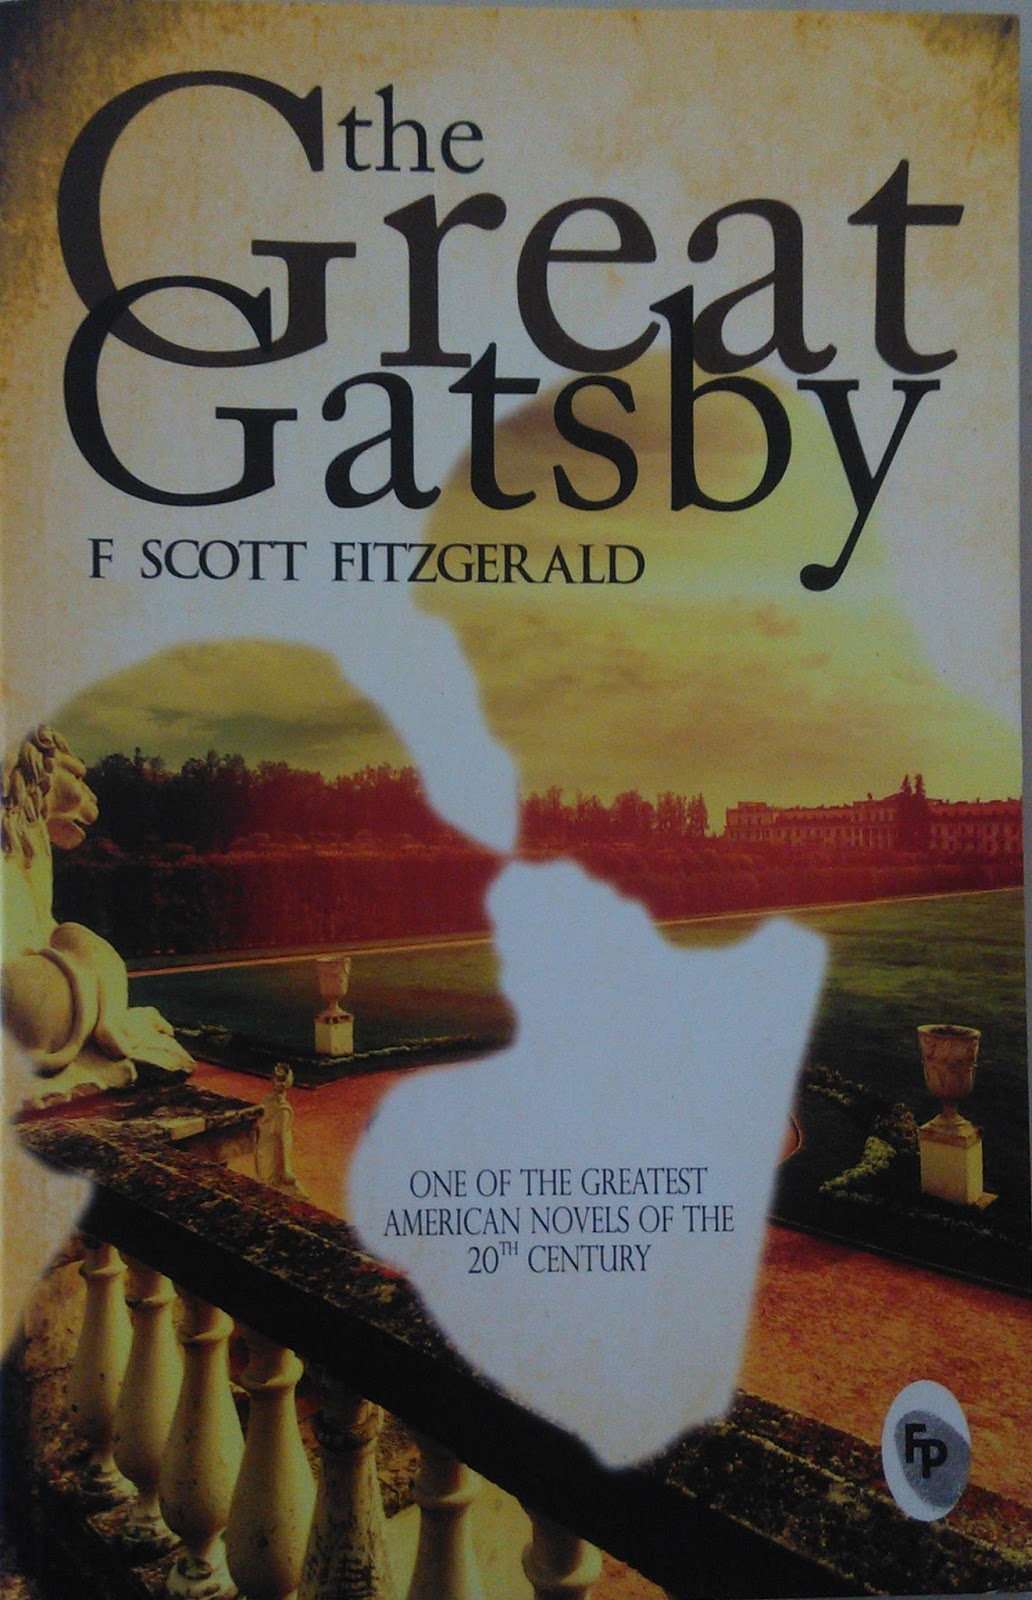 An analysis of daisy fay buchanans character in the great